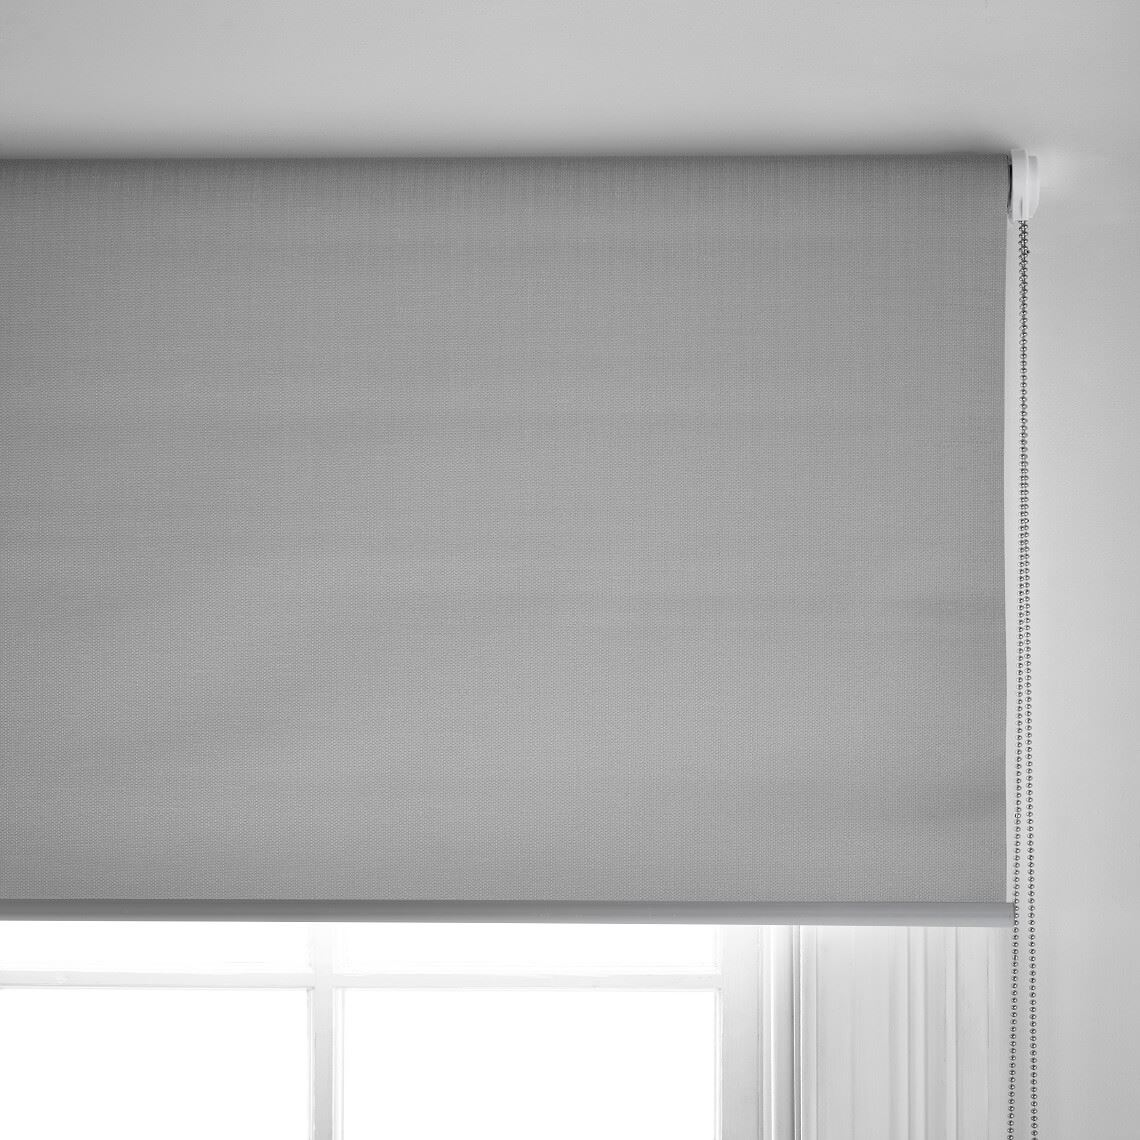 Casa Blockout Roller Blind Size W 90cm x D 0cm x H 210cm in Grey 100% Polyester Freedom by Freedom, a Curtains for sale on Style Sourcebook